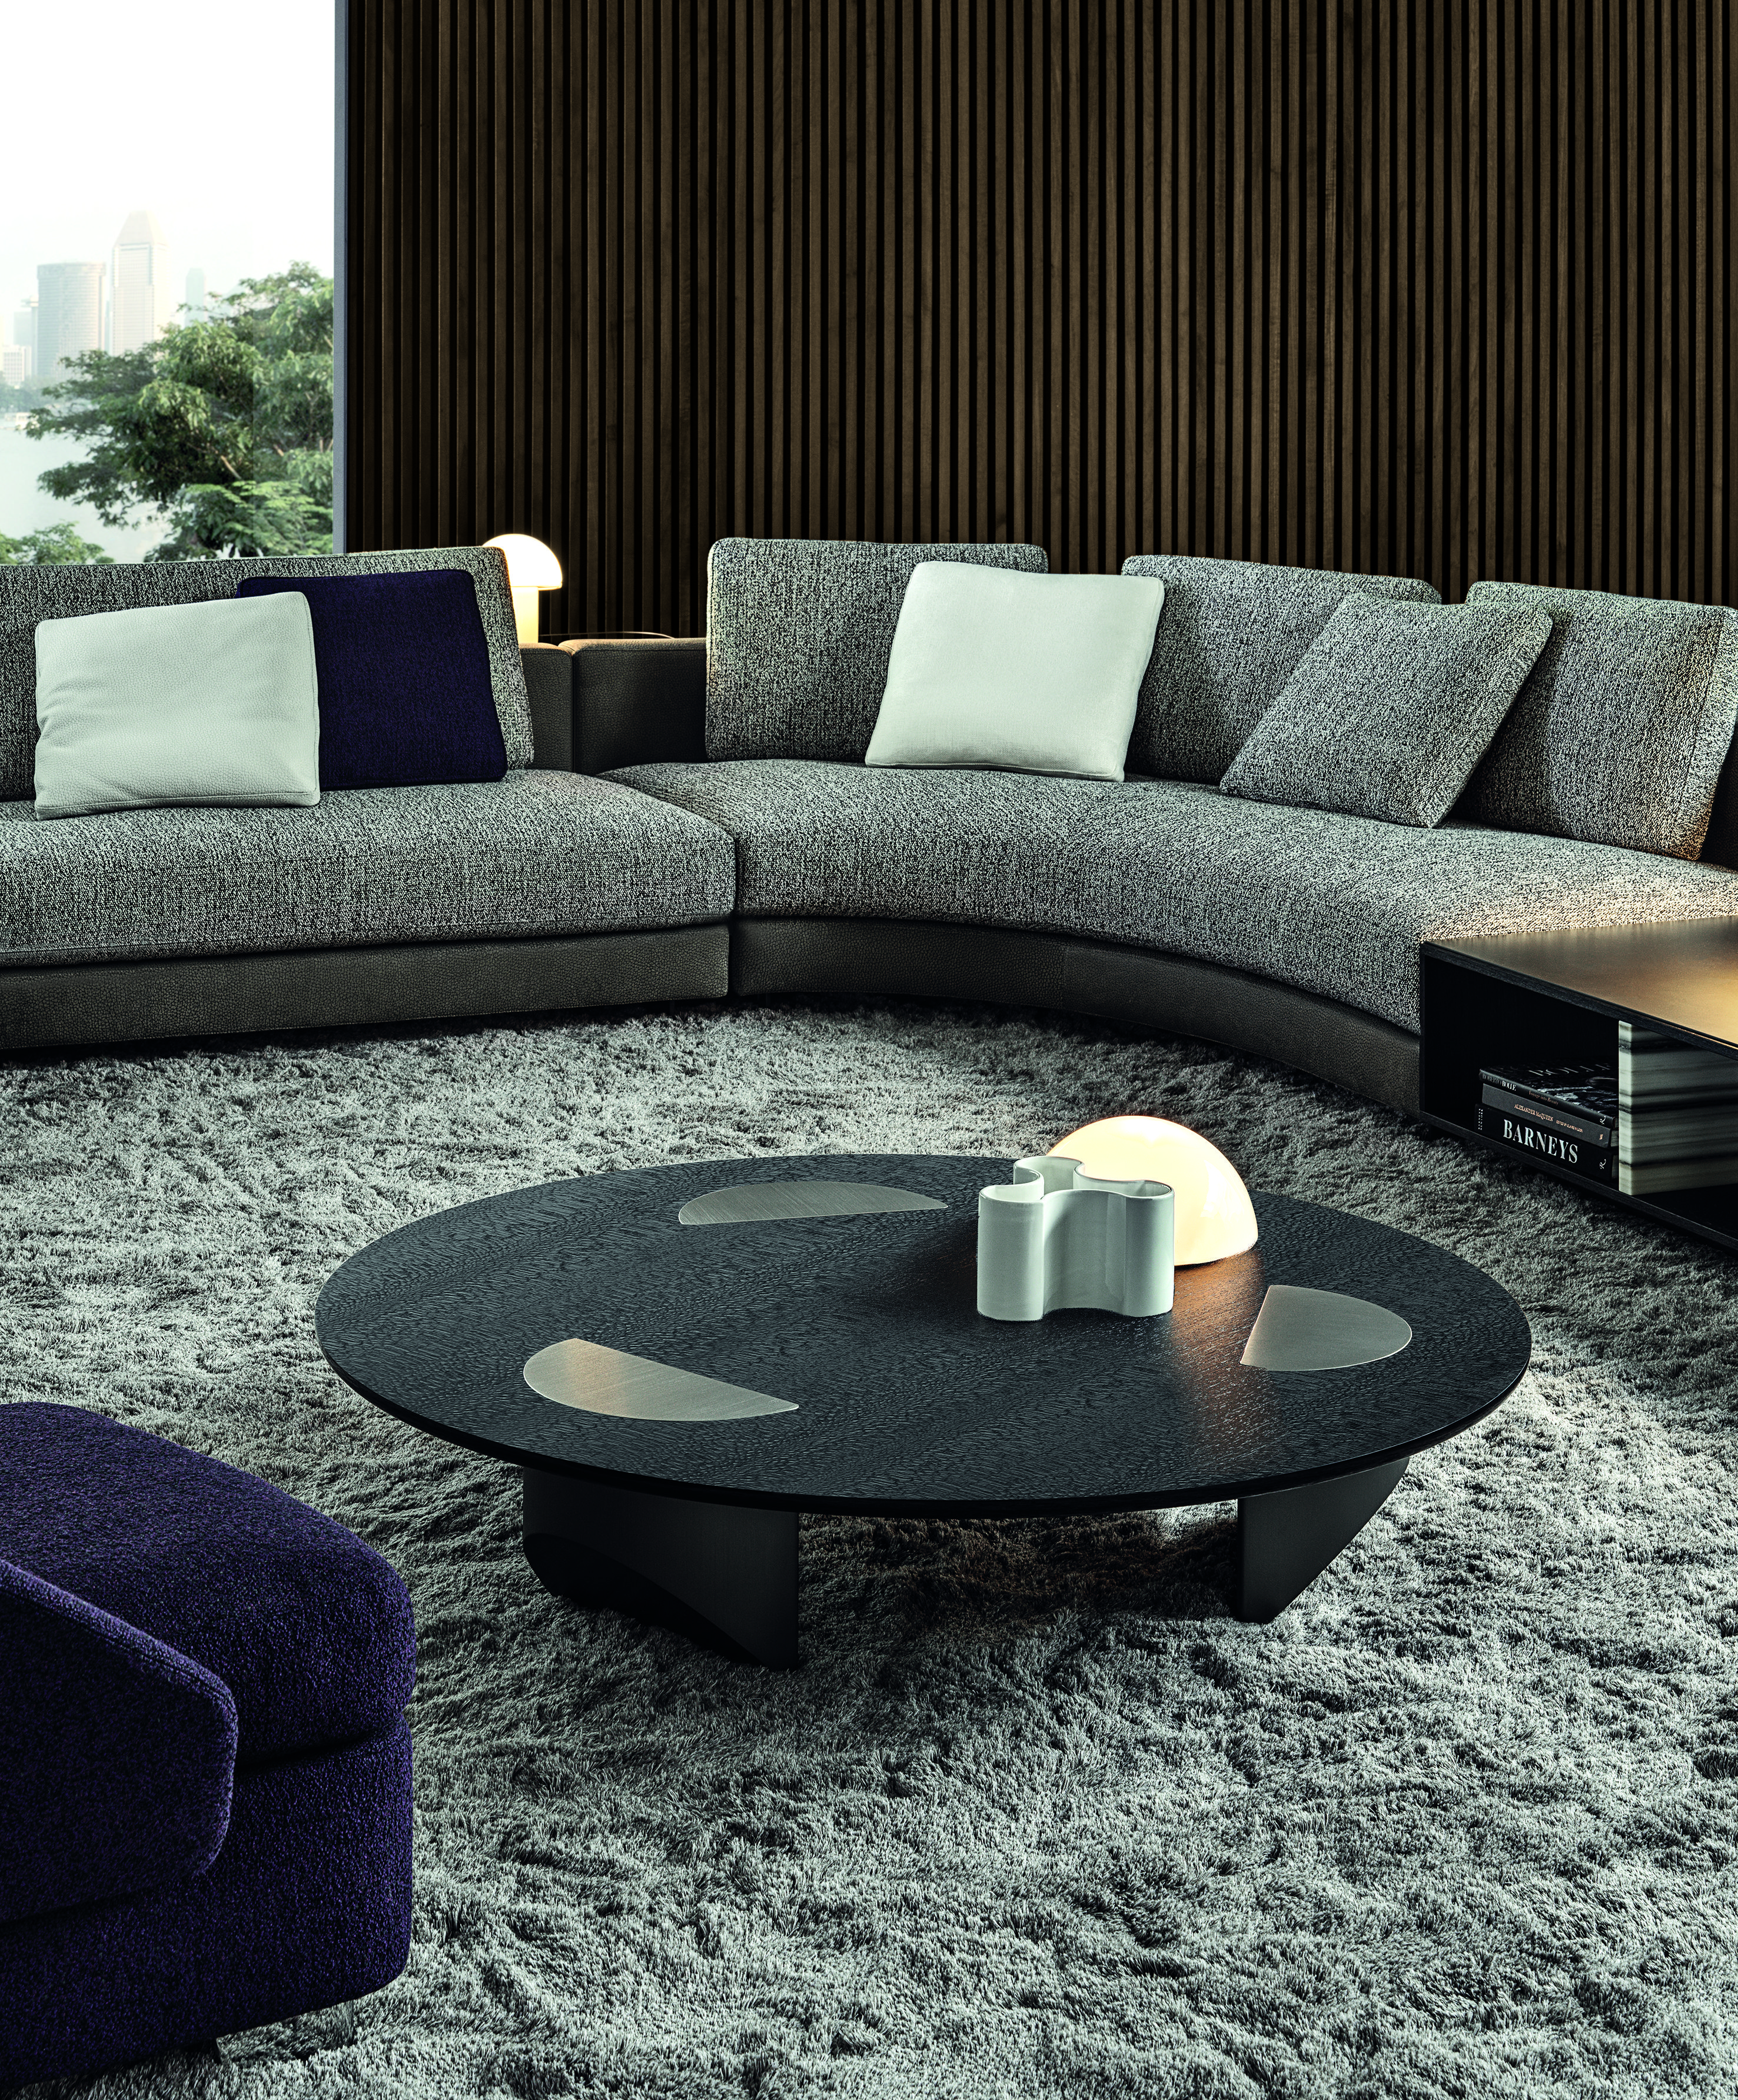 Wedge Coffee Table Coffee Table Outdoor Sectional Sofa Nendo